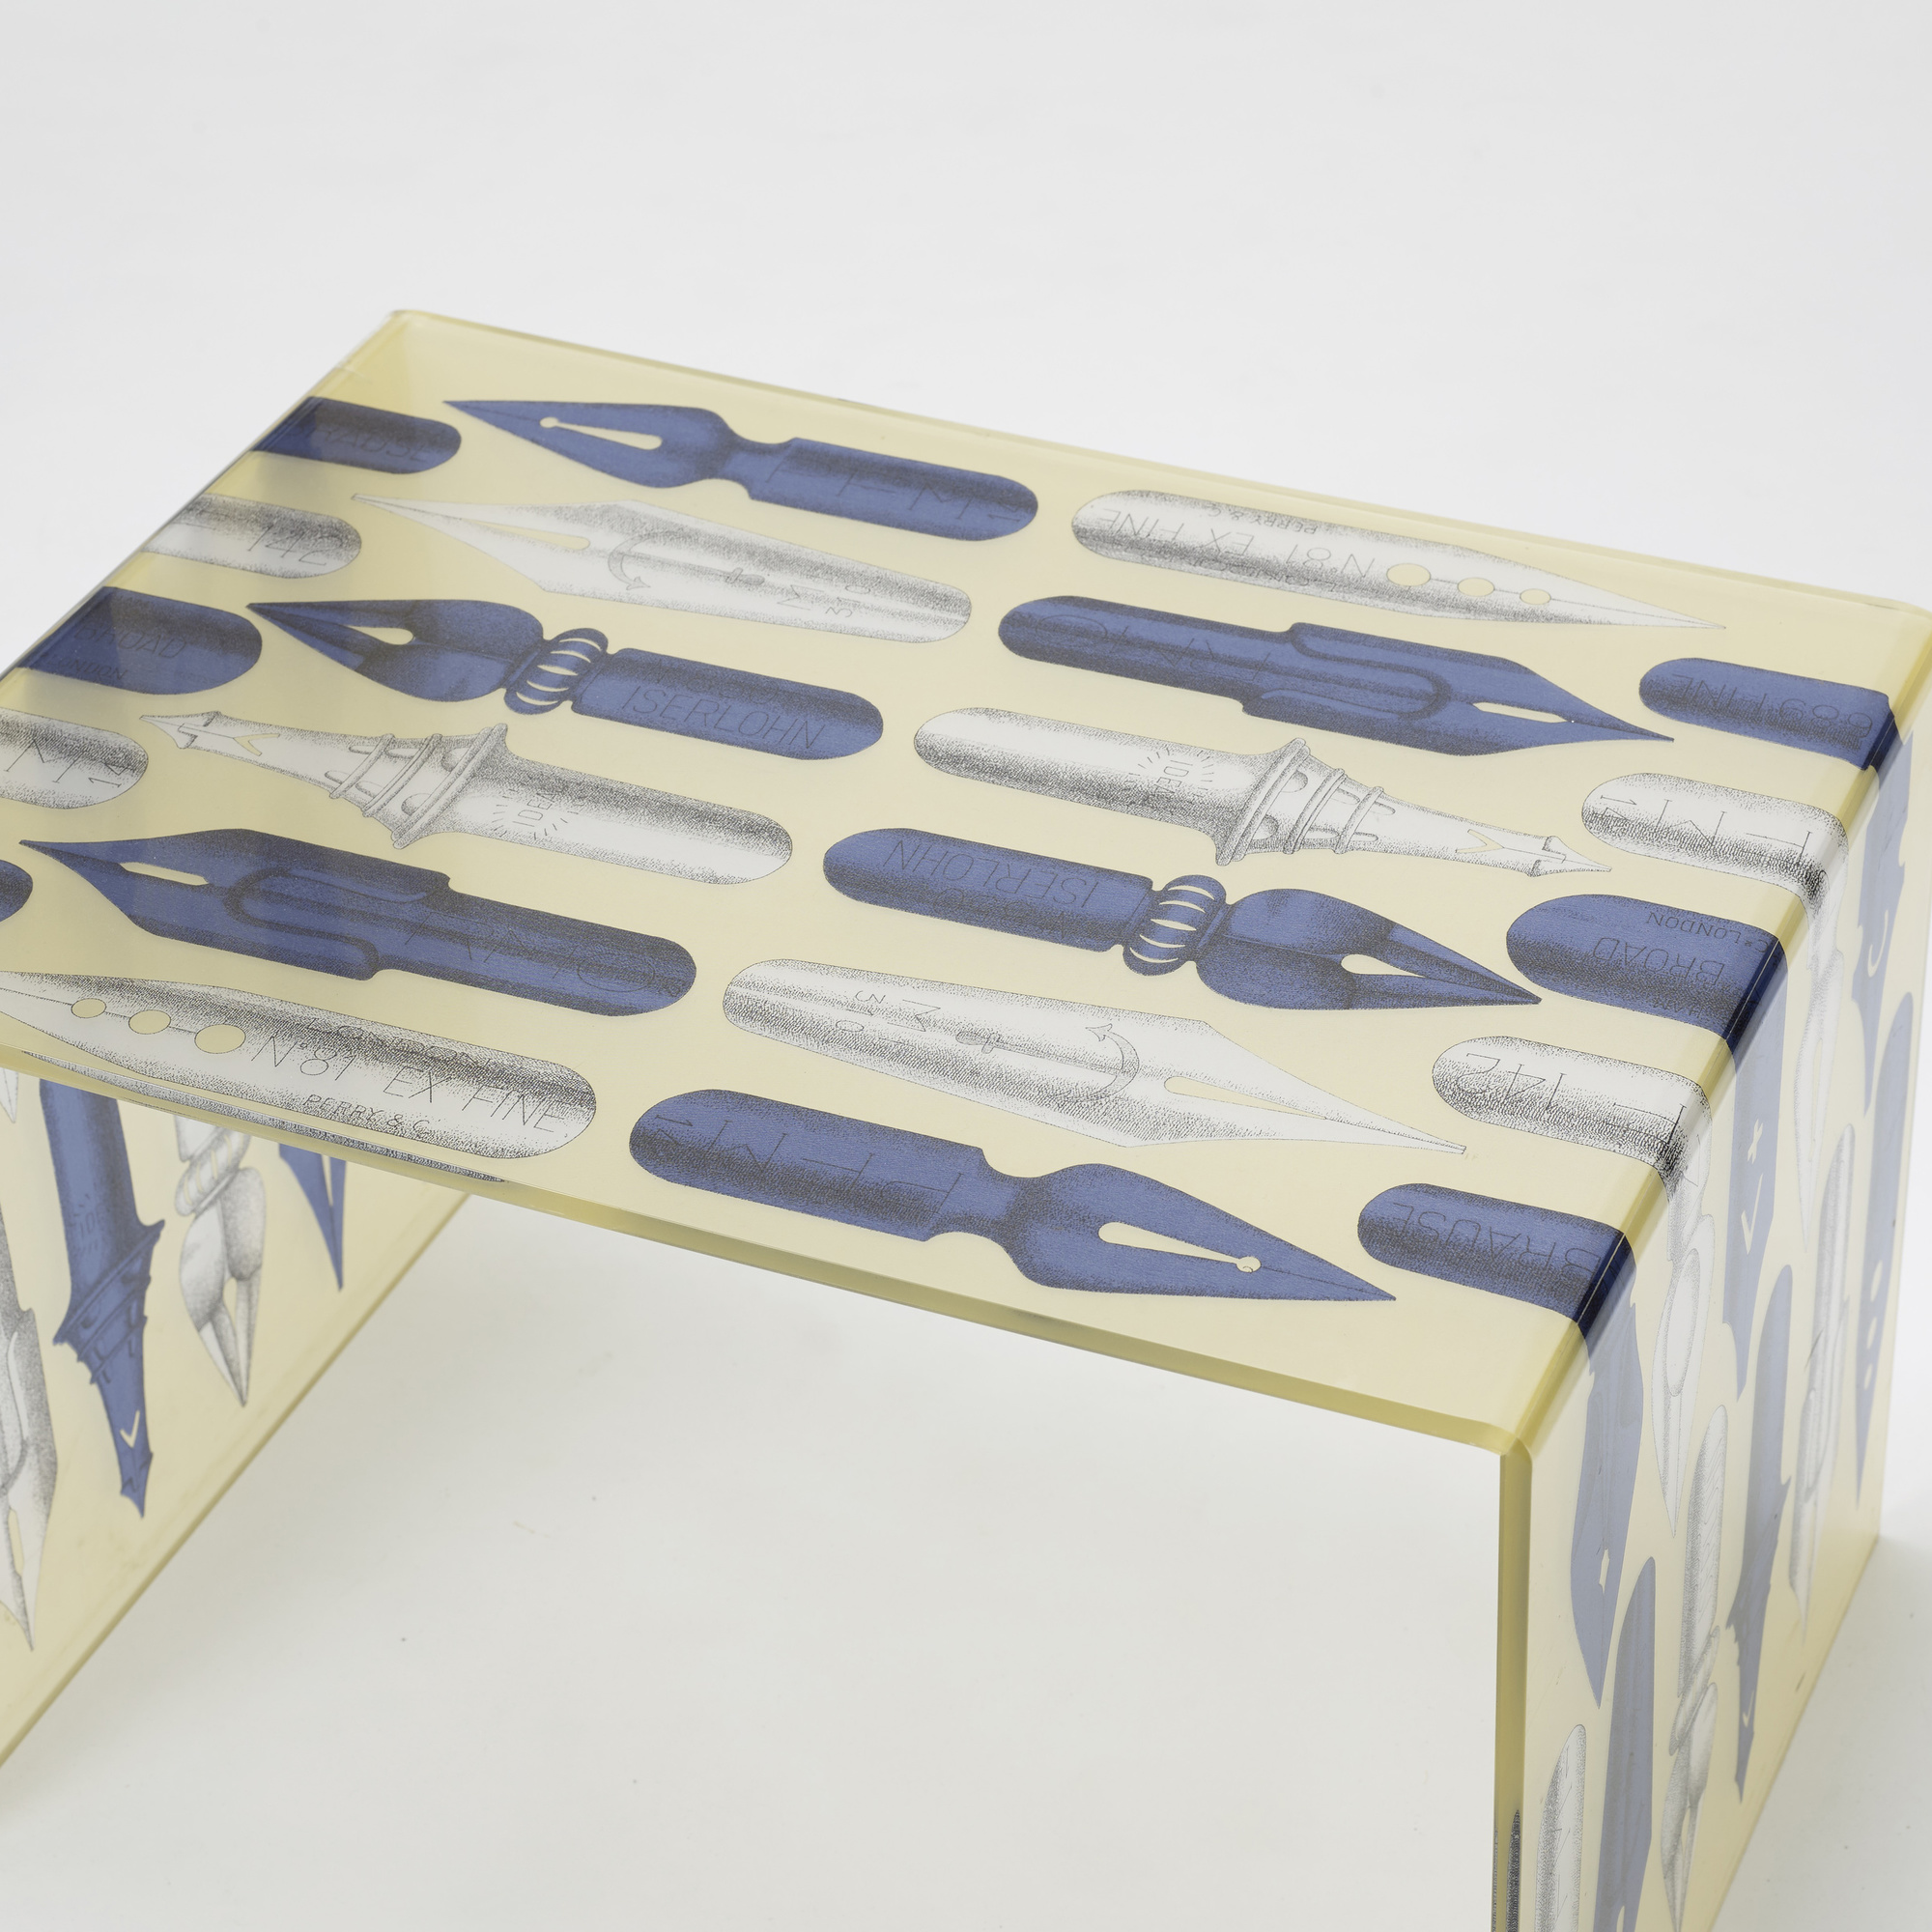 285: After Piero Fornasetti / coffee table (2 of 2)